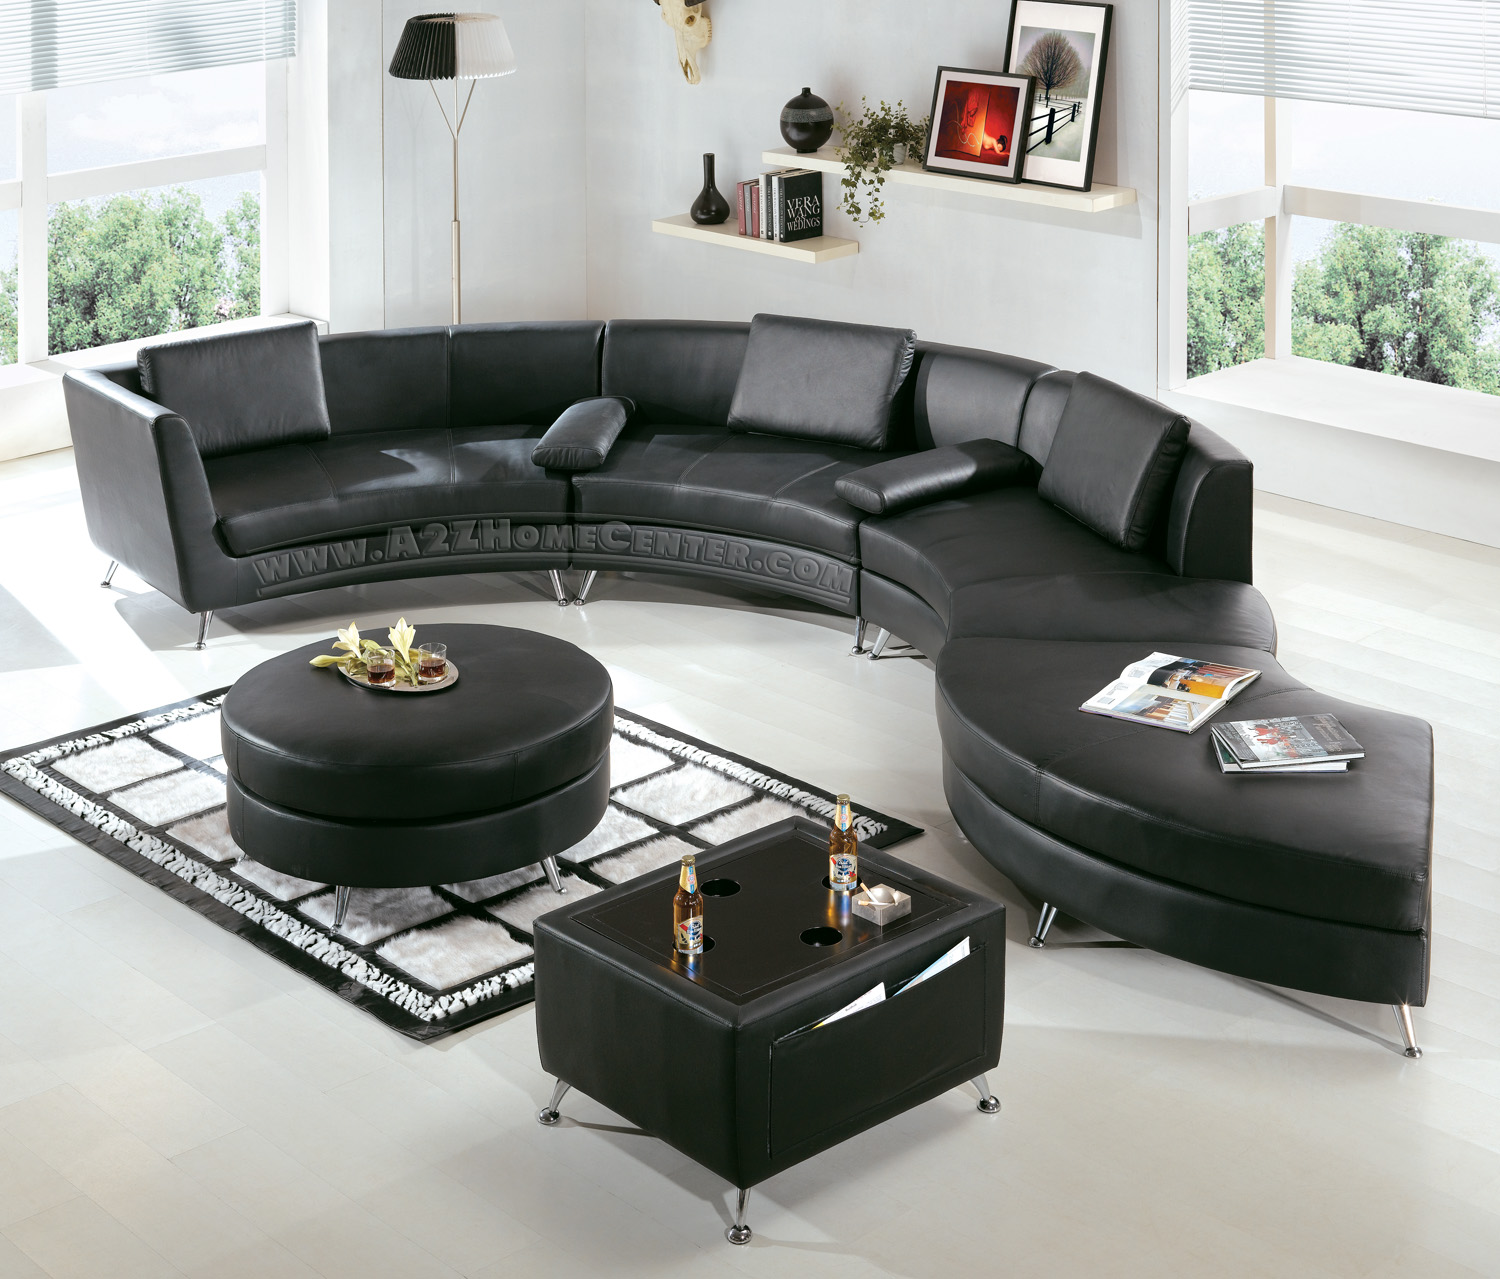 trend home interior design 2011 modern furniture sofa variety ideas. Black Bedroom Furniture Sets. Home Design Ideas